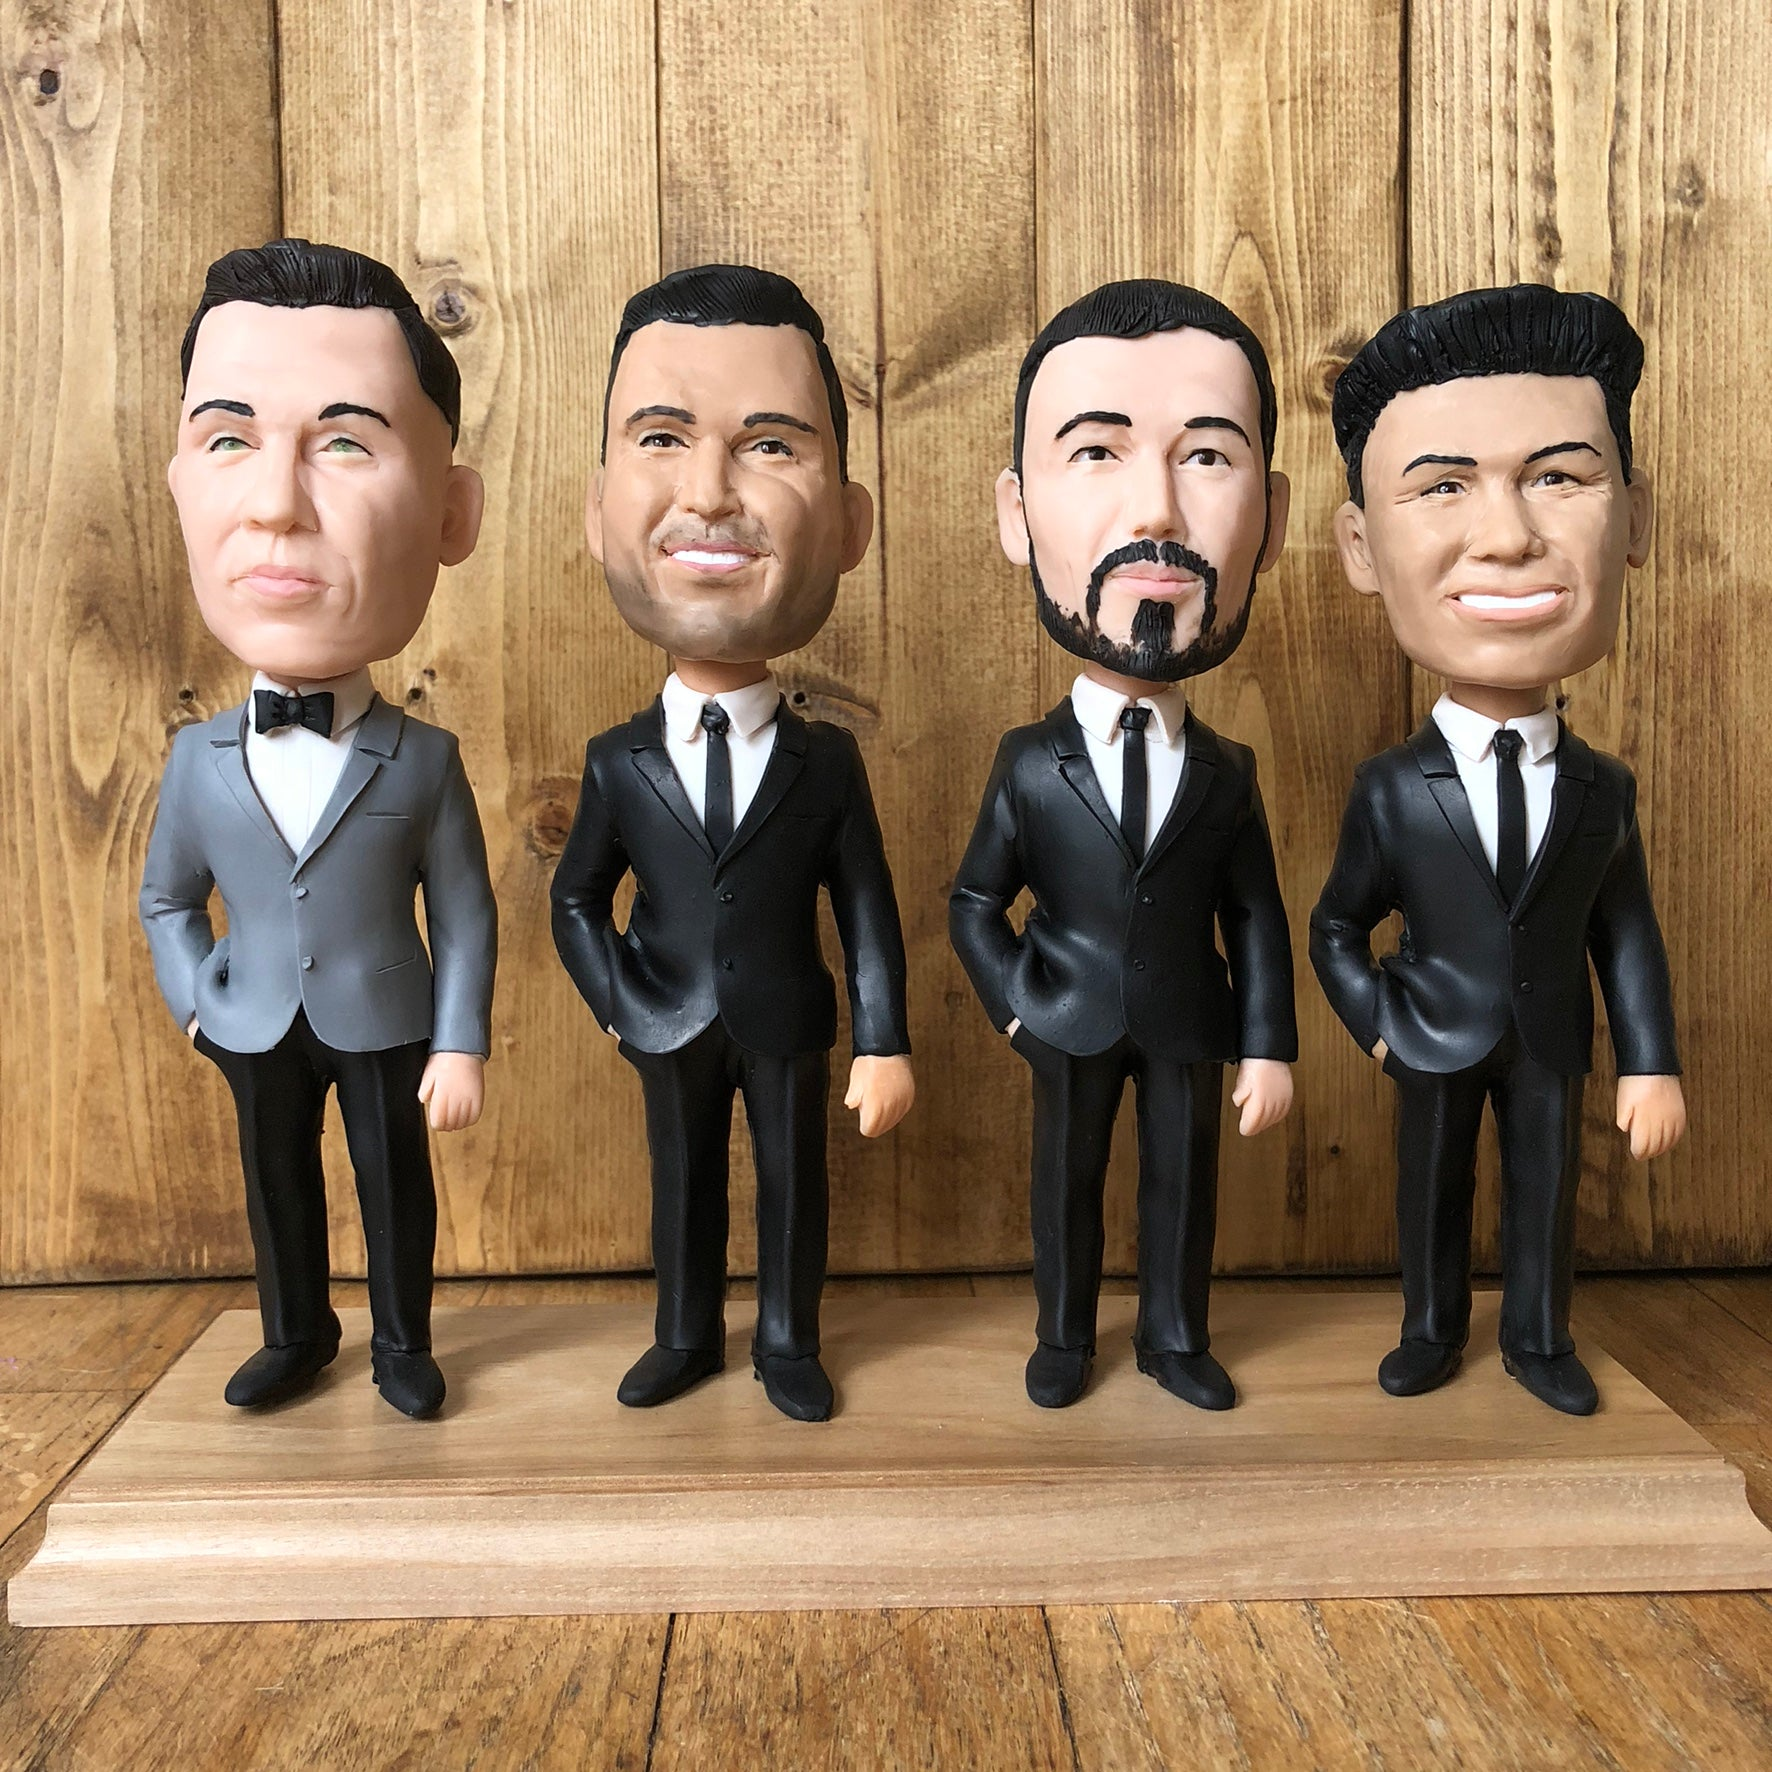 50 Best Wedding Gifts 2020 No Registry No Problem: 300+ Unique Groomsmen Gifts In 2020 (from $19.99